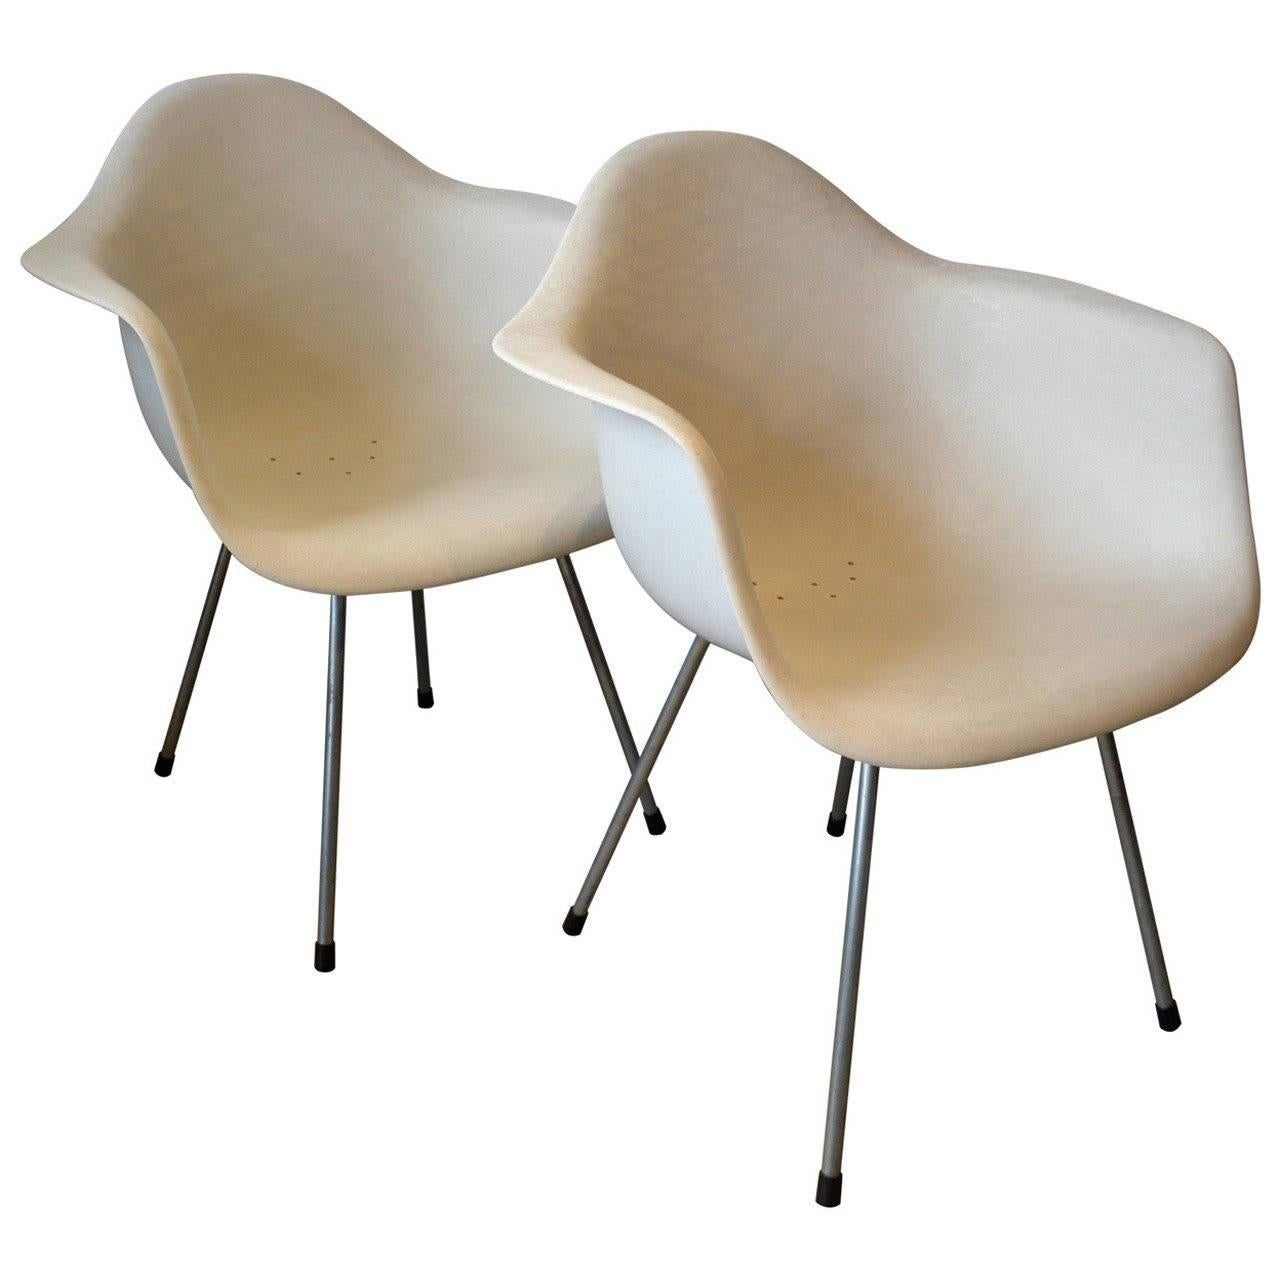 Pair of Eames Molded Fiberglass Side Chairs by Herman Miller, 1950's